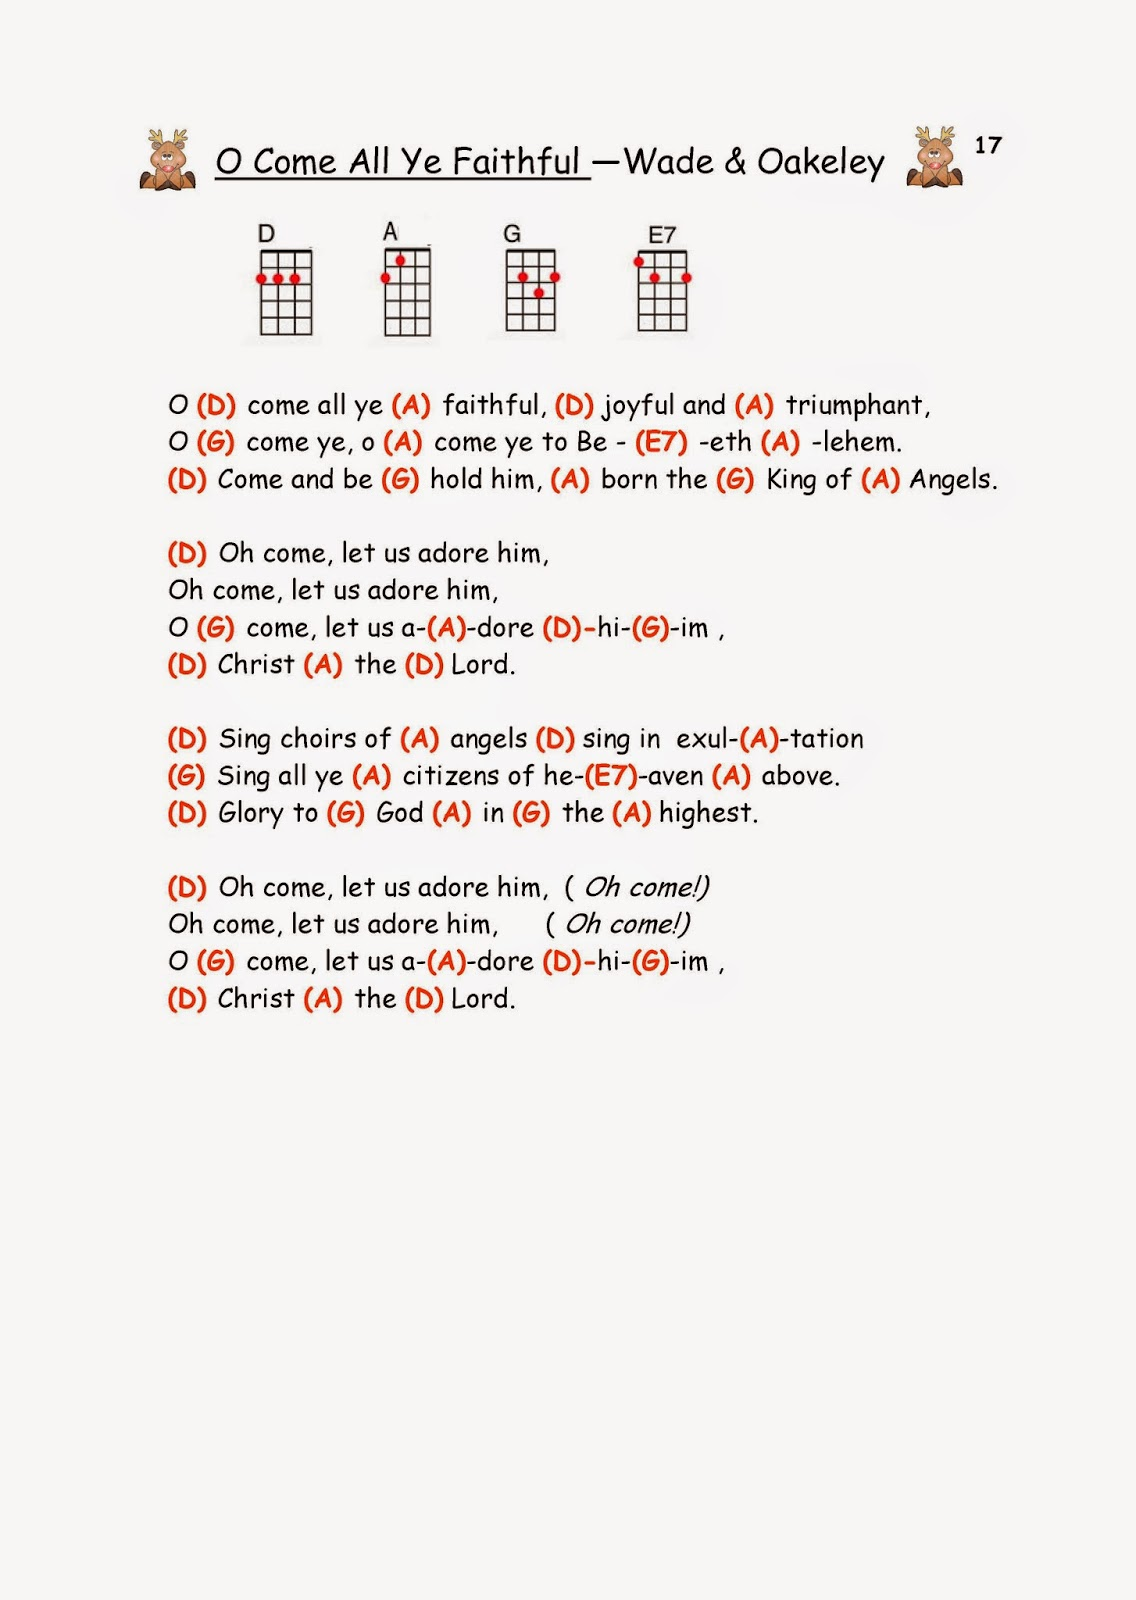 O come let us adore him guitar chords image collections guitar let us adore fatherlandz free guitar chords free christmas guitar chords allandc fatherlandz image collections hexwebz Image collections